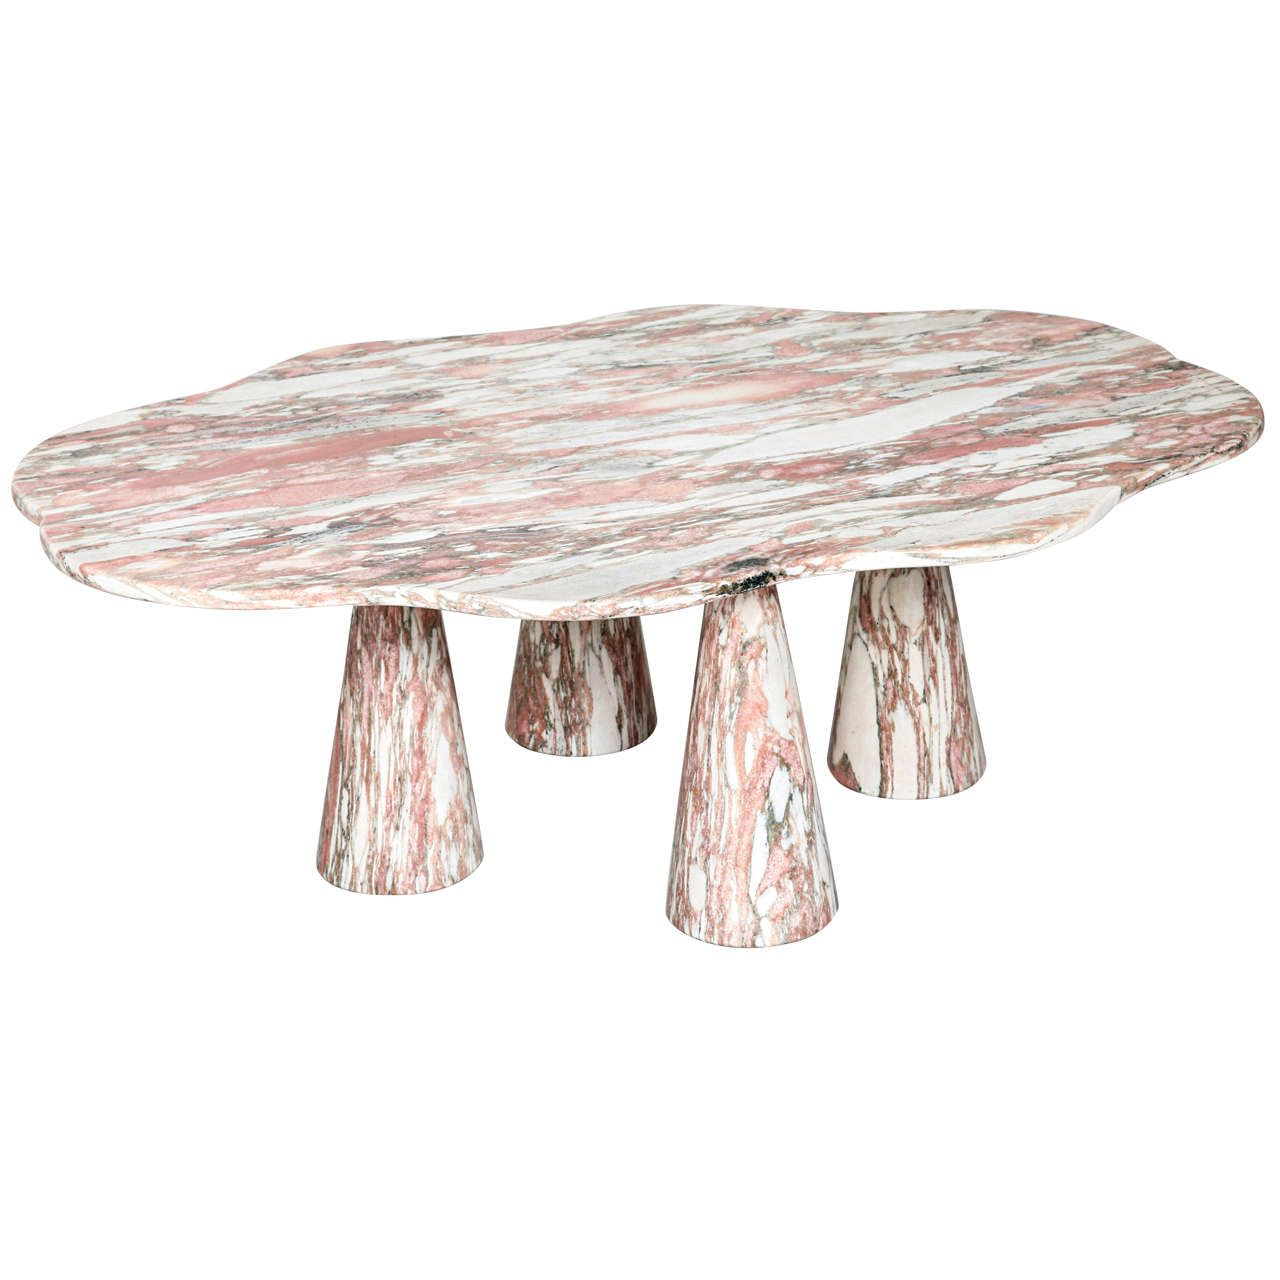 Stunning Italian Marble Coffee Table In Style Of Mangiarotti Marble Coffee Table Coffee Table Italian Marble [ 1280 x 1280 Pixel ]